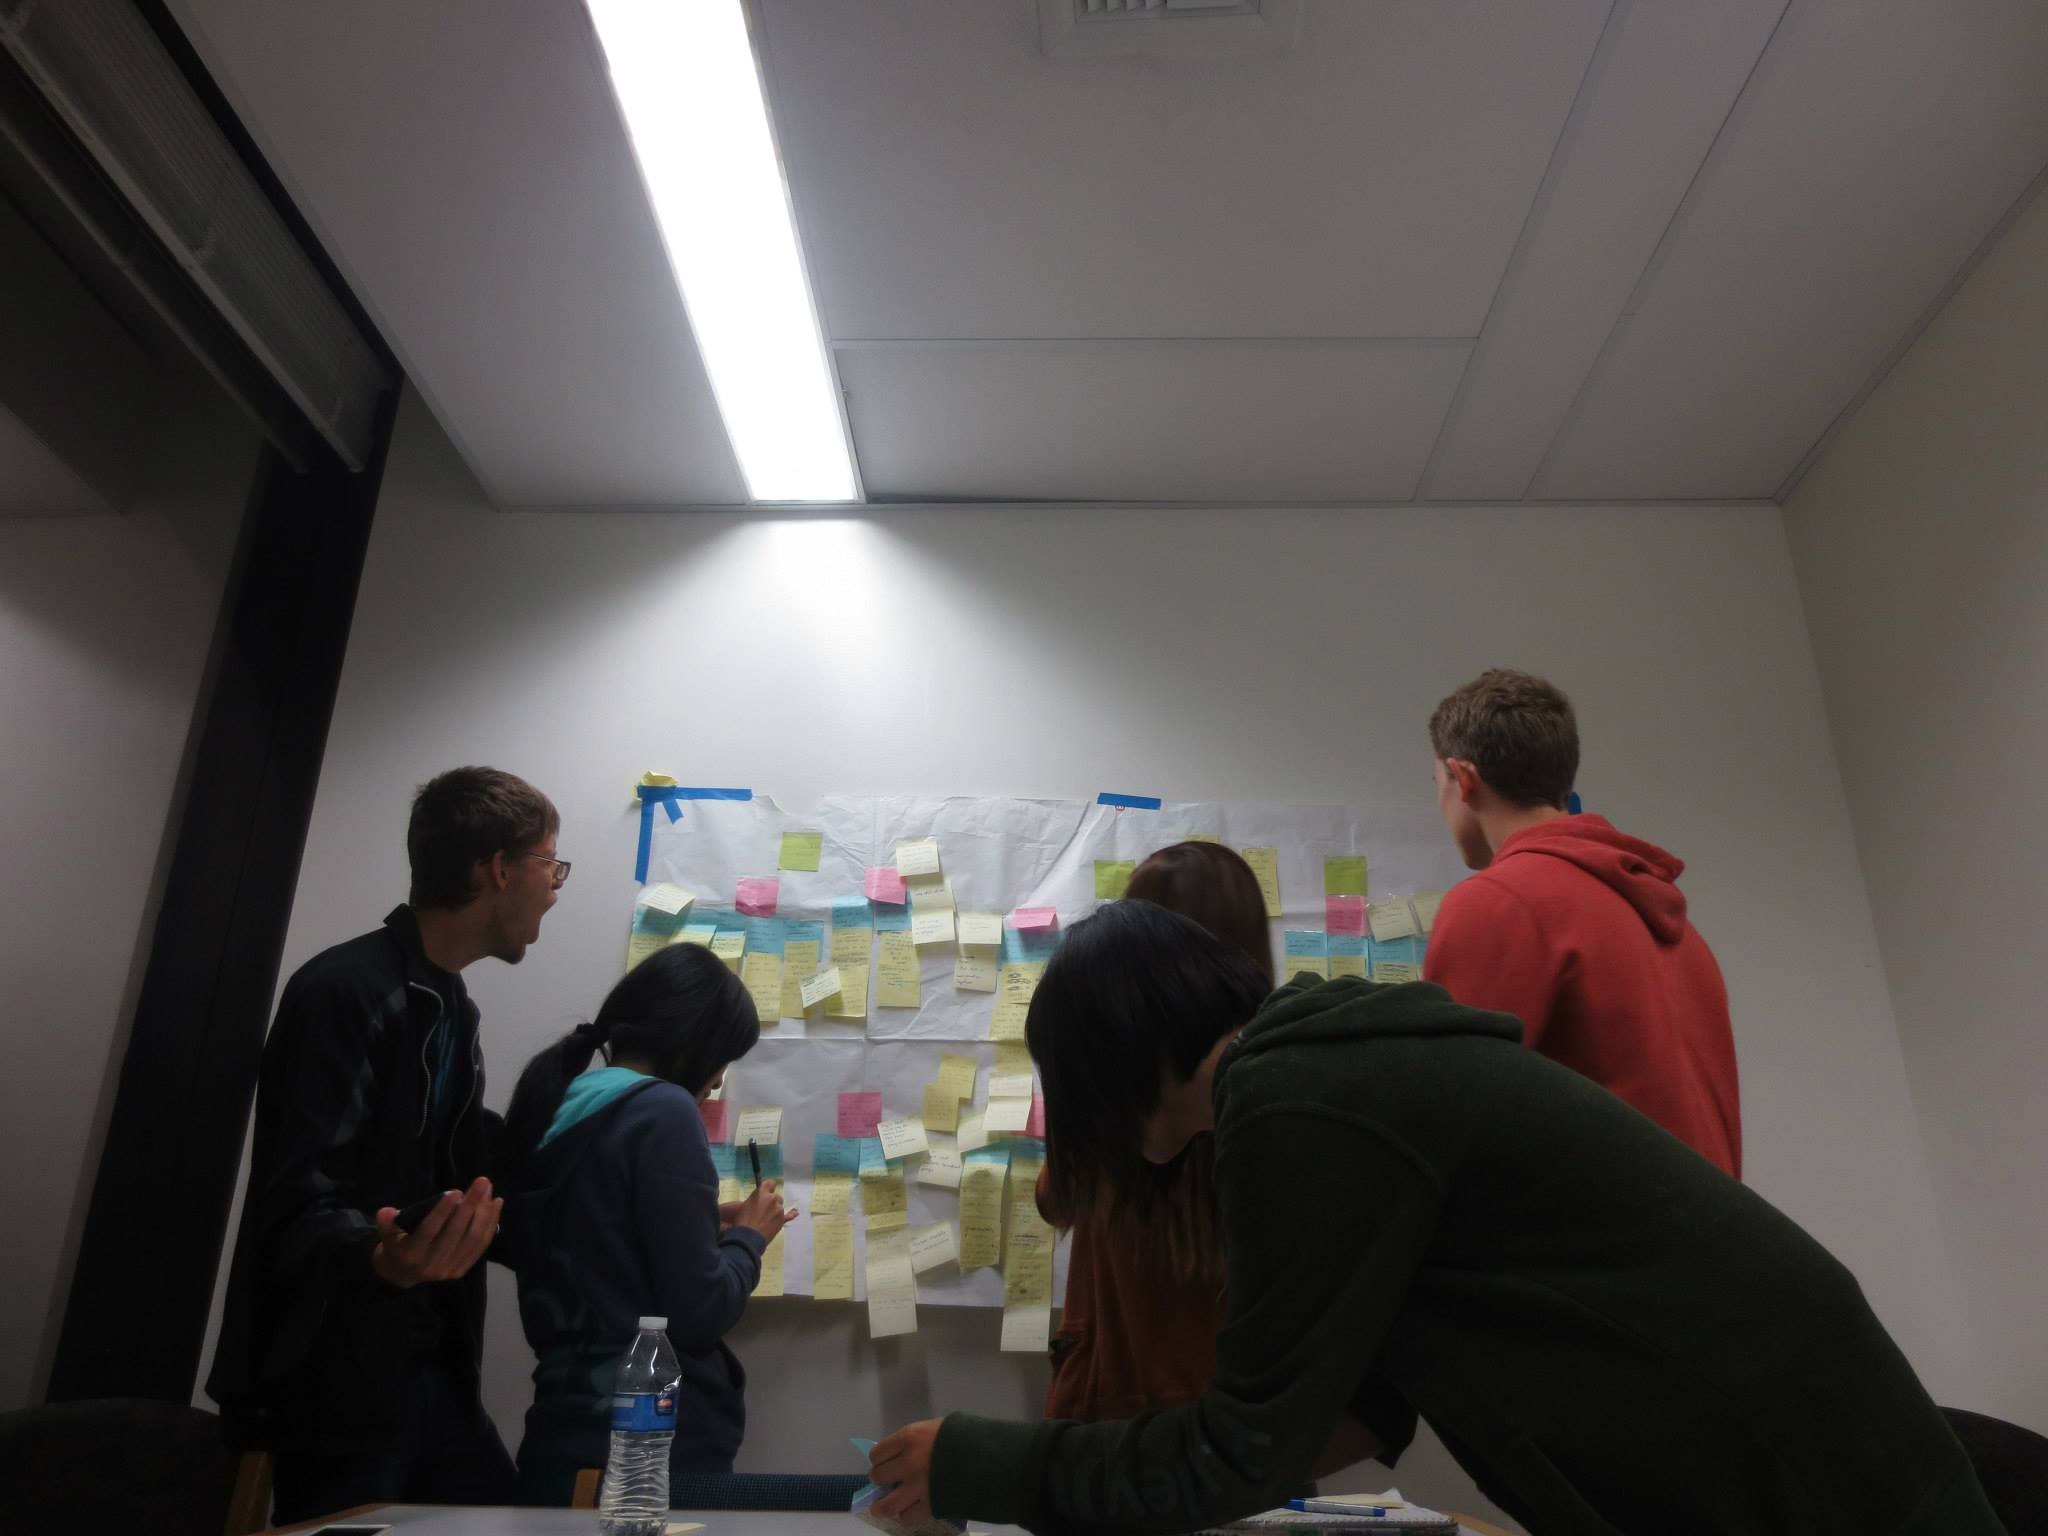 The team, gathered round the affinity diagram, mining for insights and looking goofy.